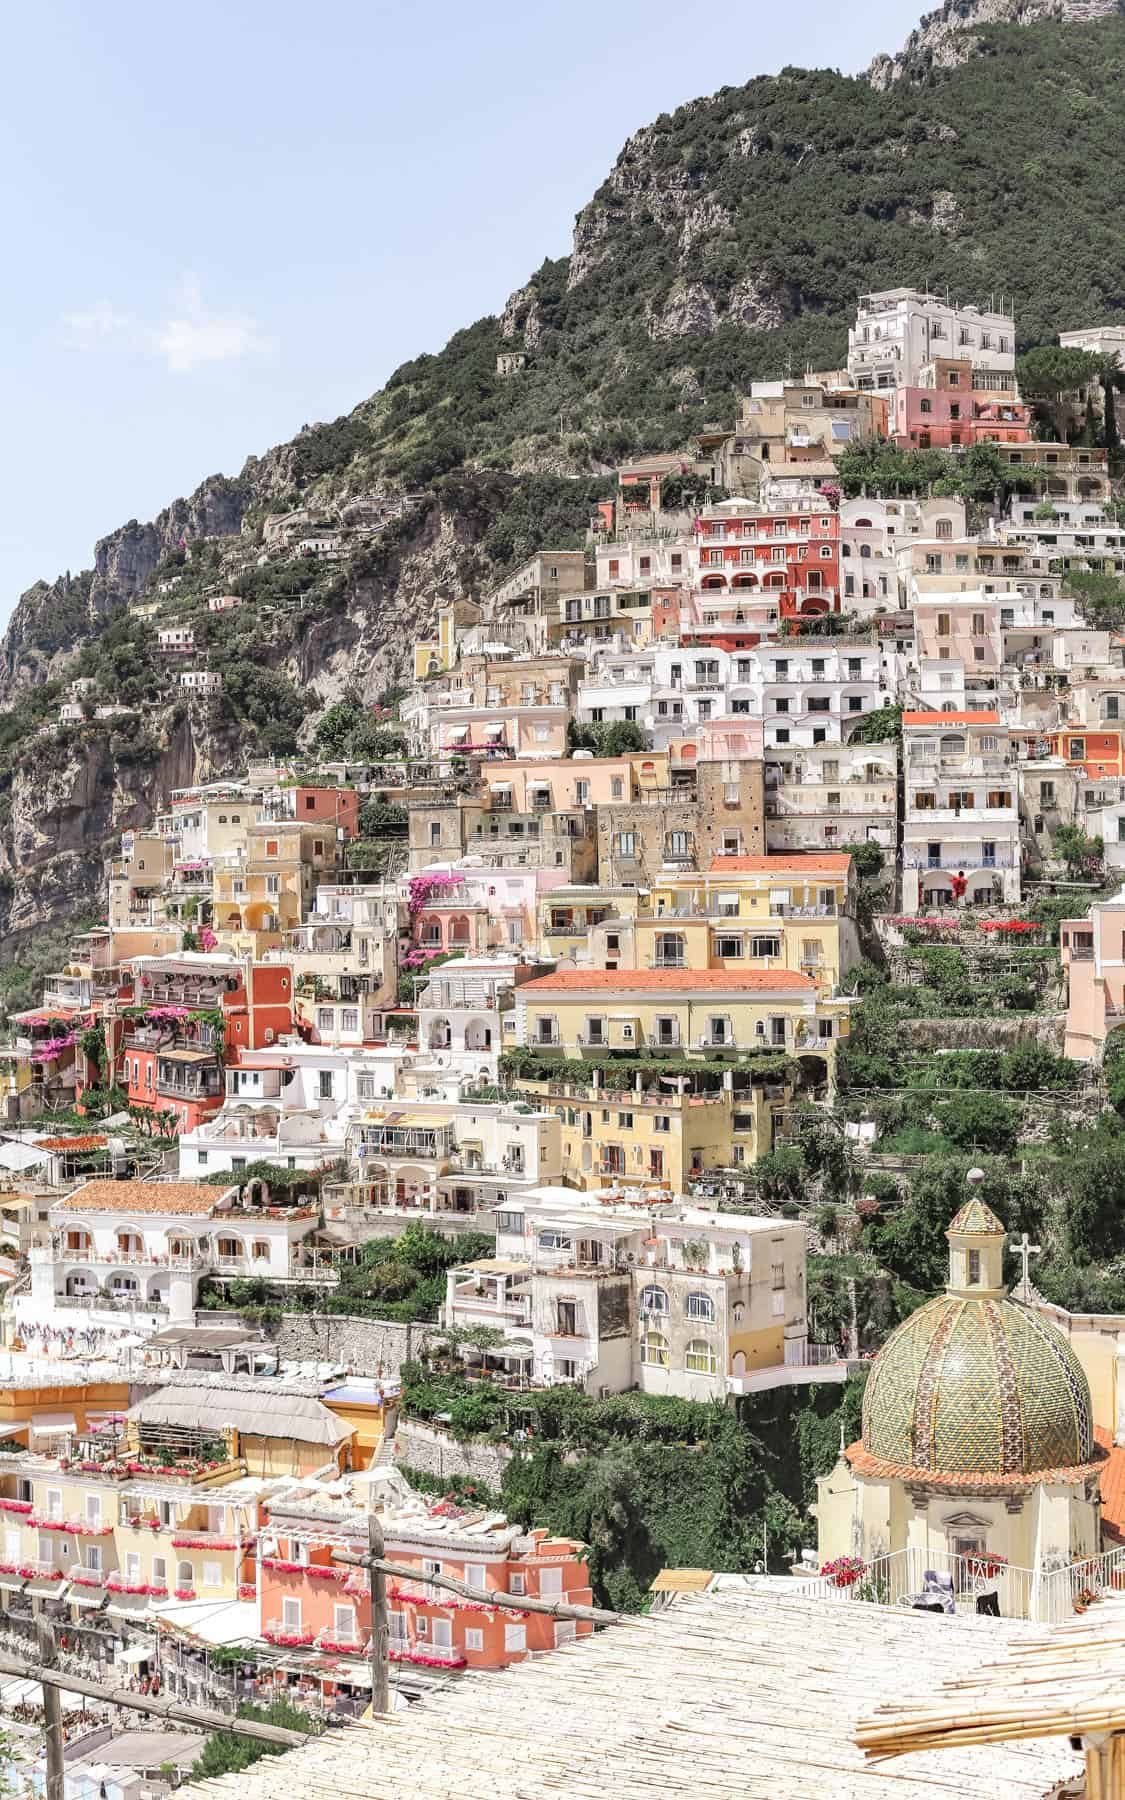 How to avoid the crowds in Positano